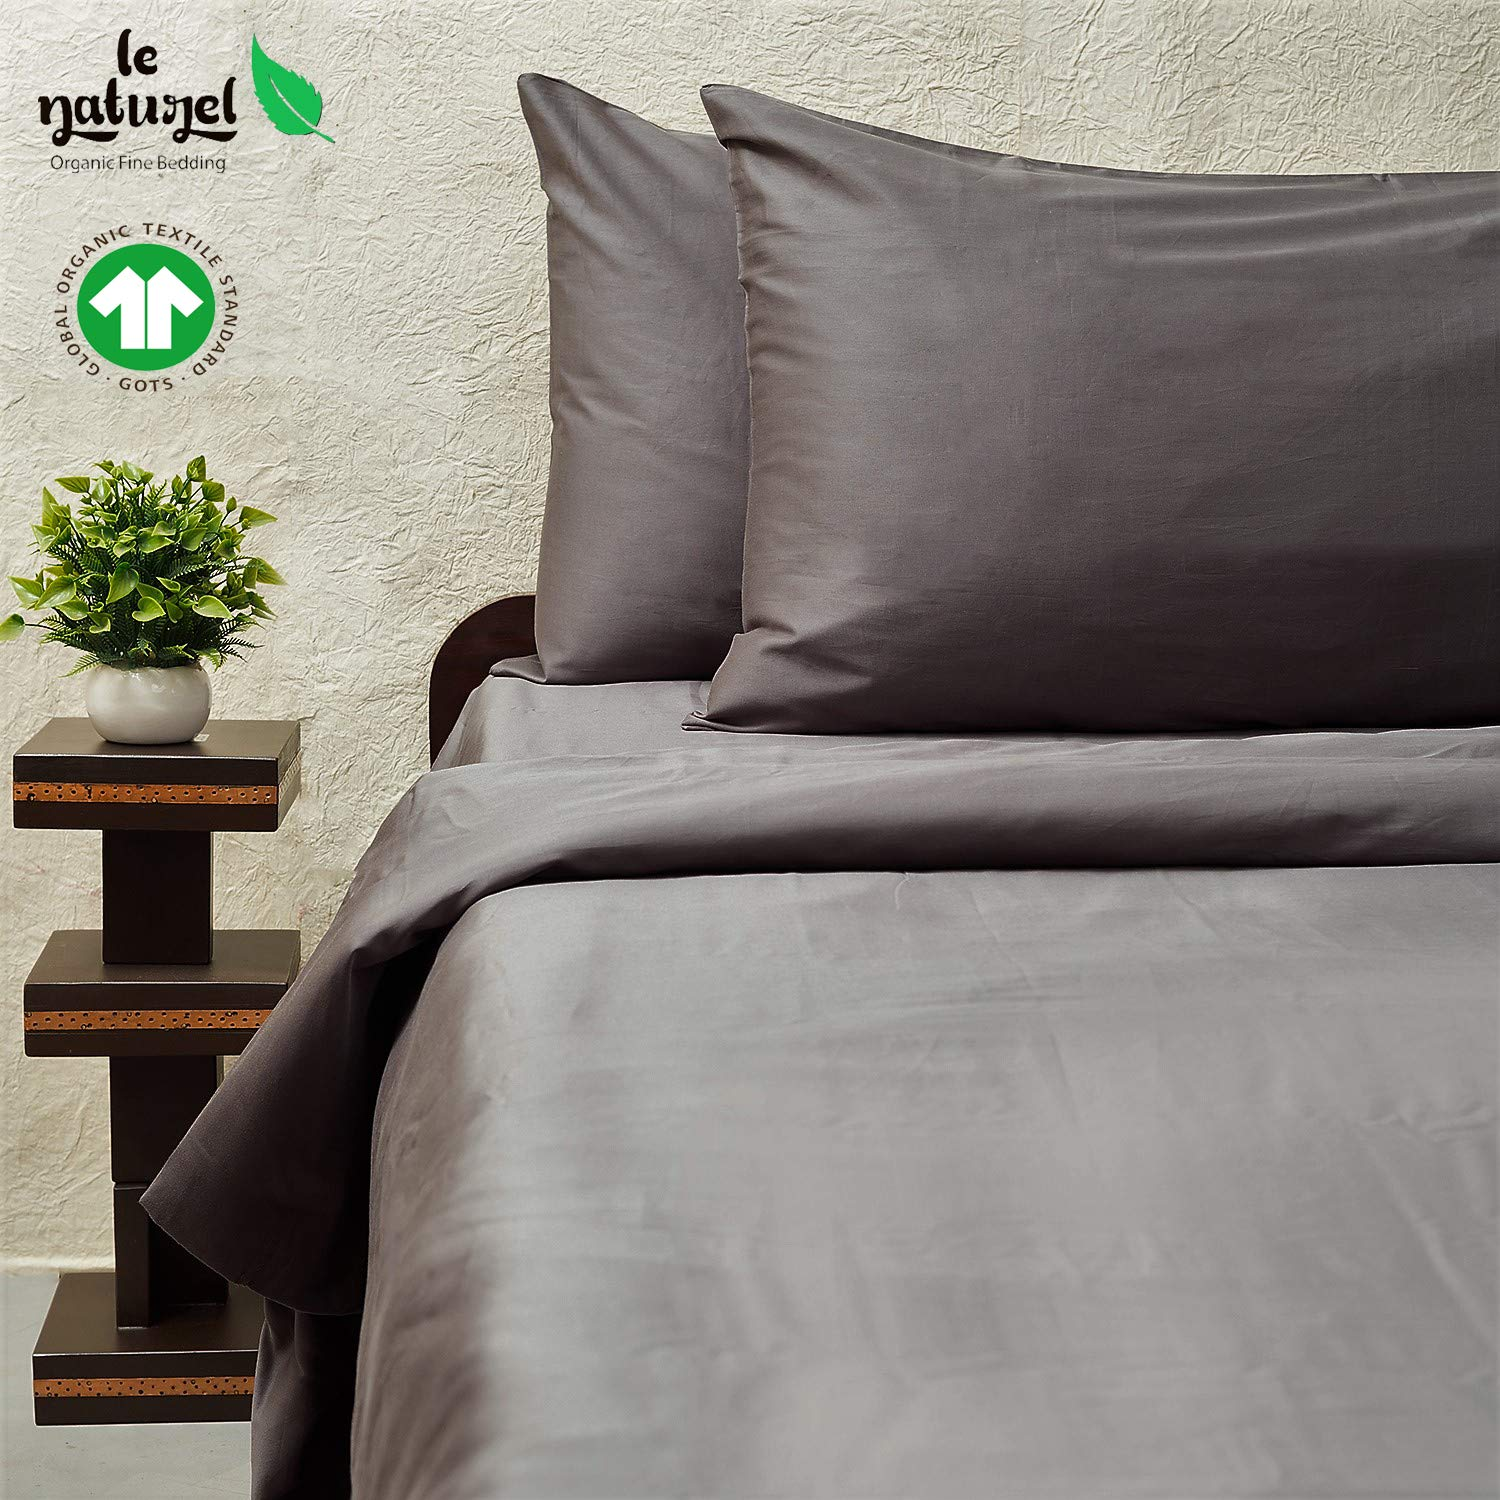 Le Naturel 300 Thread Count 100% GOTS Certified Organic Cotton Duvet Cover Full and Queen Size (Dark Gray) Bedding Super Soft Sateen Weave,3 Way Protection, Premium Collection by Le Naturel